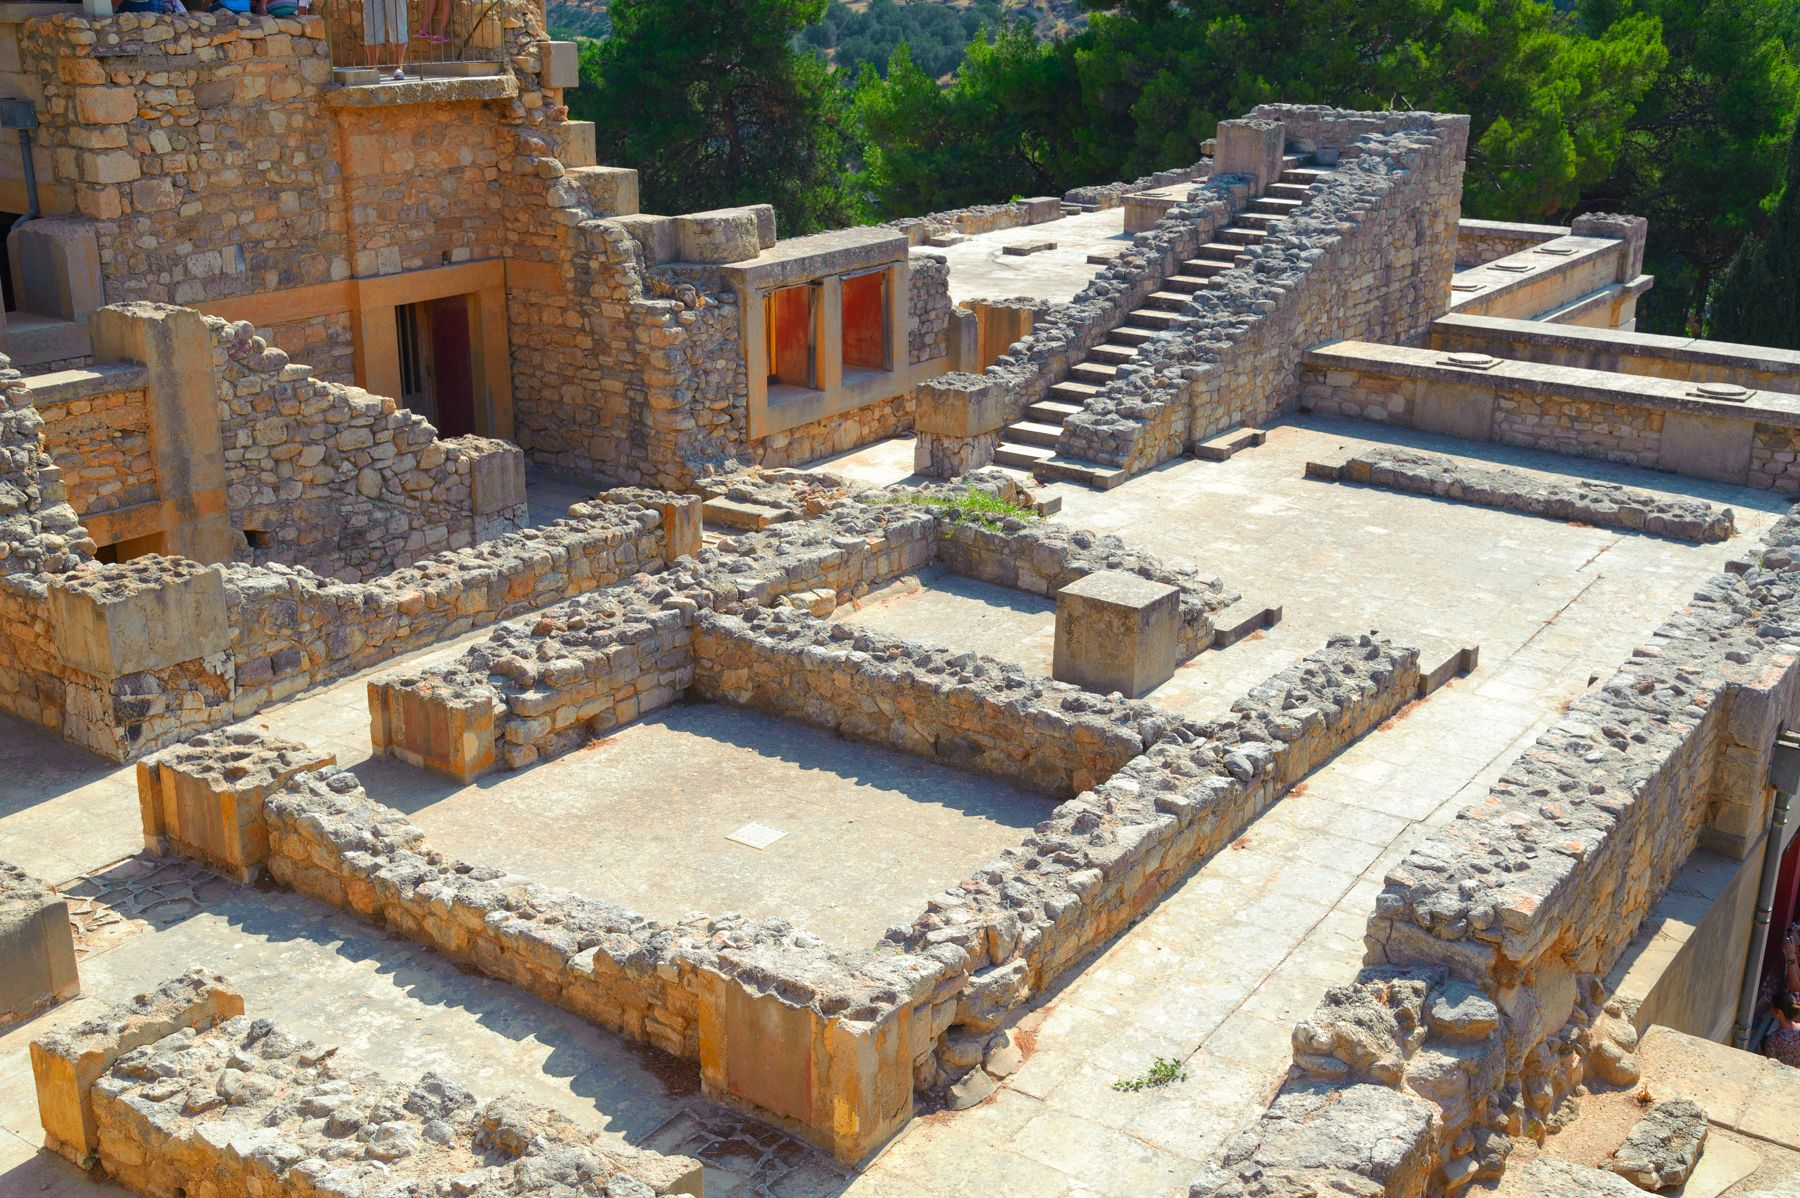 Archaeological finds in Knossos, Heraklion